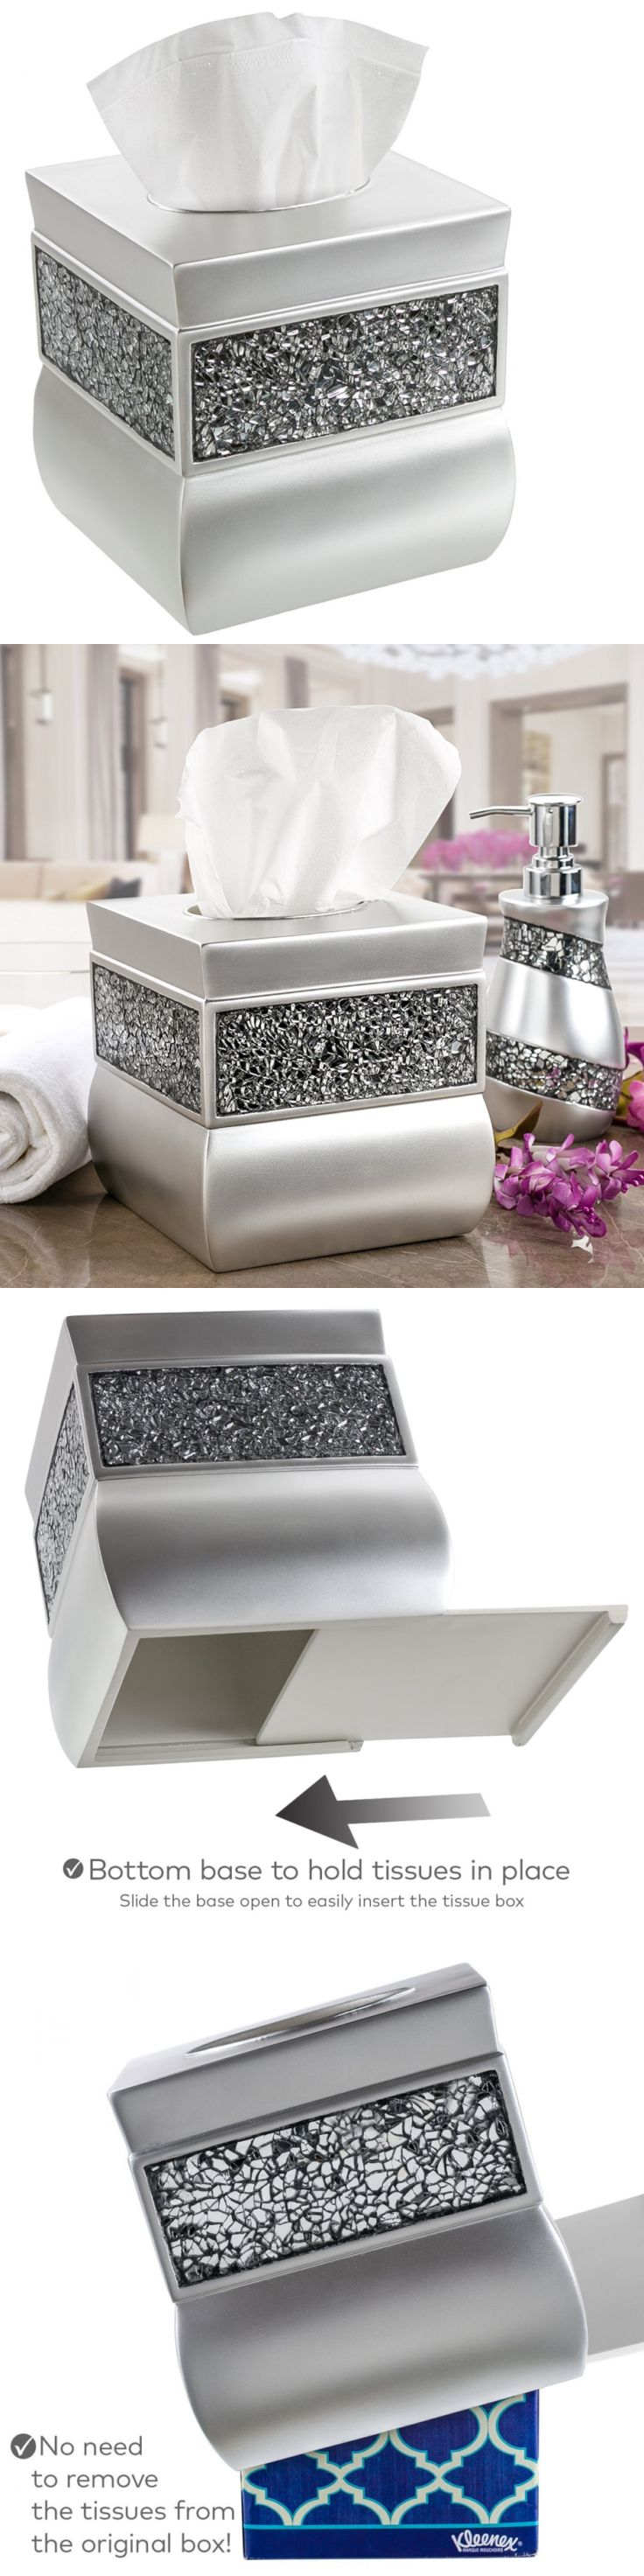 Tissue Box Covers 25452: Creative Scents Tissue Box Cover Square, Decorative Tissue Box Holder Is Finishe -> BUY IT NOW ONLY: $31.37 on eBay!